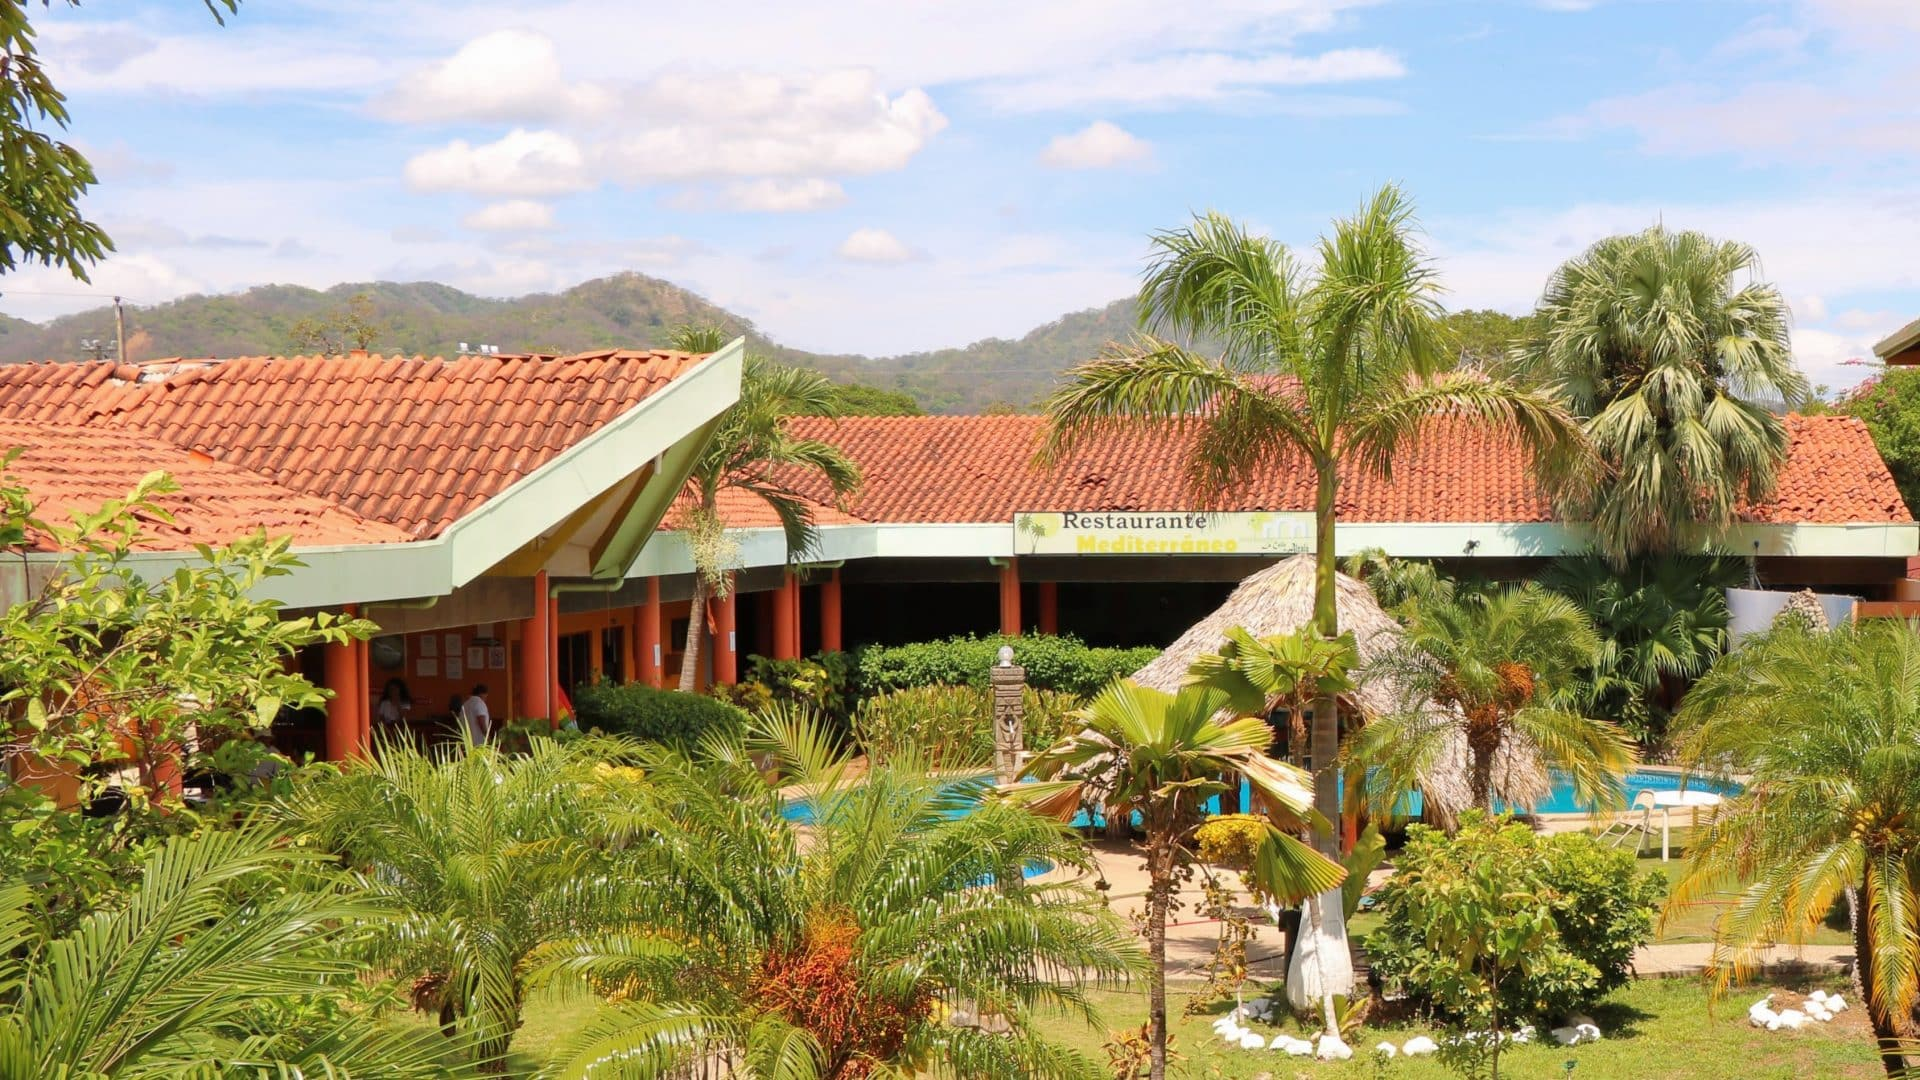 The only one Hotel in Santa Cruz, Guanacaste: 28 Rooms